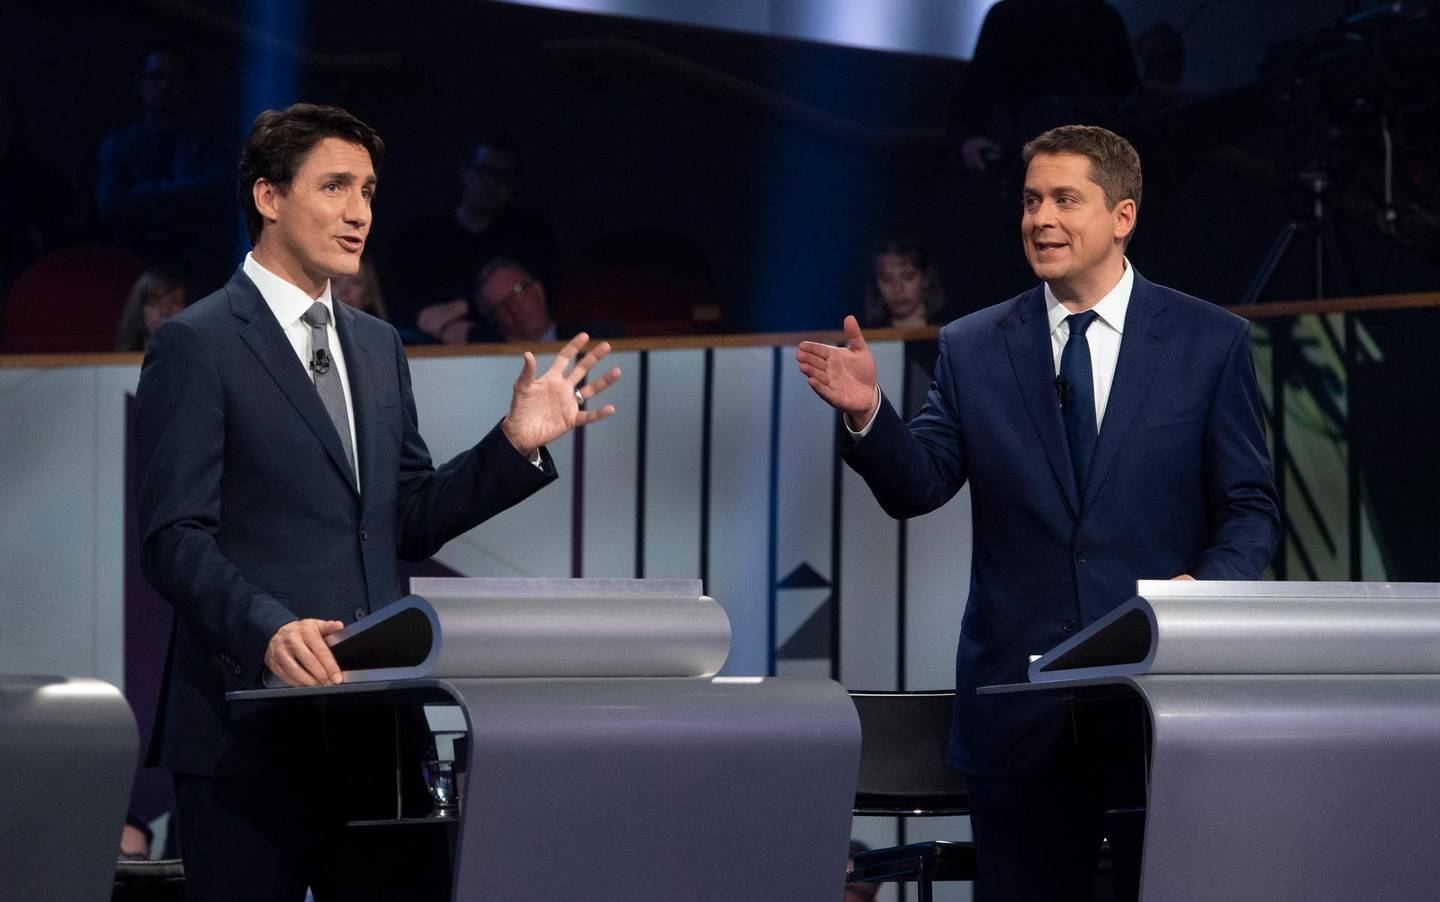 epa07911660 Canadian Prime Minister and Liberal leader Justin Trudeau (L) and Conservative leader Andrew Scheer (R) take part in a federal political leaders debate in Gatineau, Quebec, Canada, 10 October 2019. Canadians will vote in the country's 43rd general election on 21 October 2019.  EPA/ADRIAN WYLD / POOL